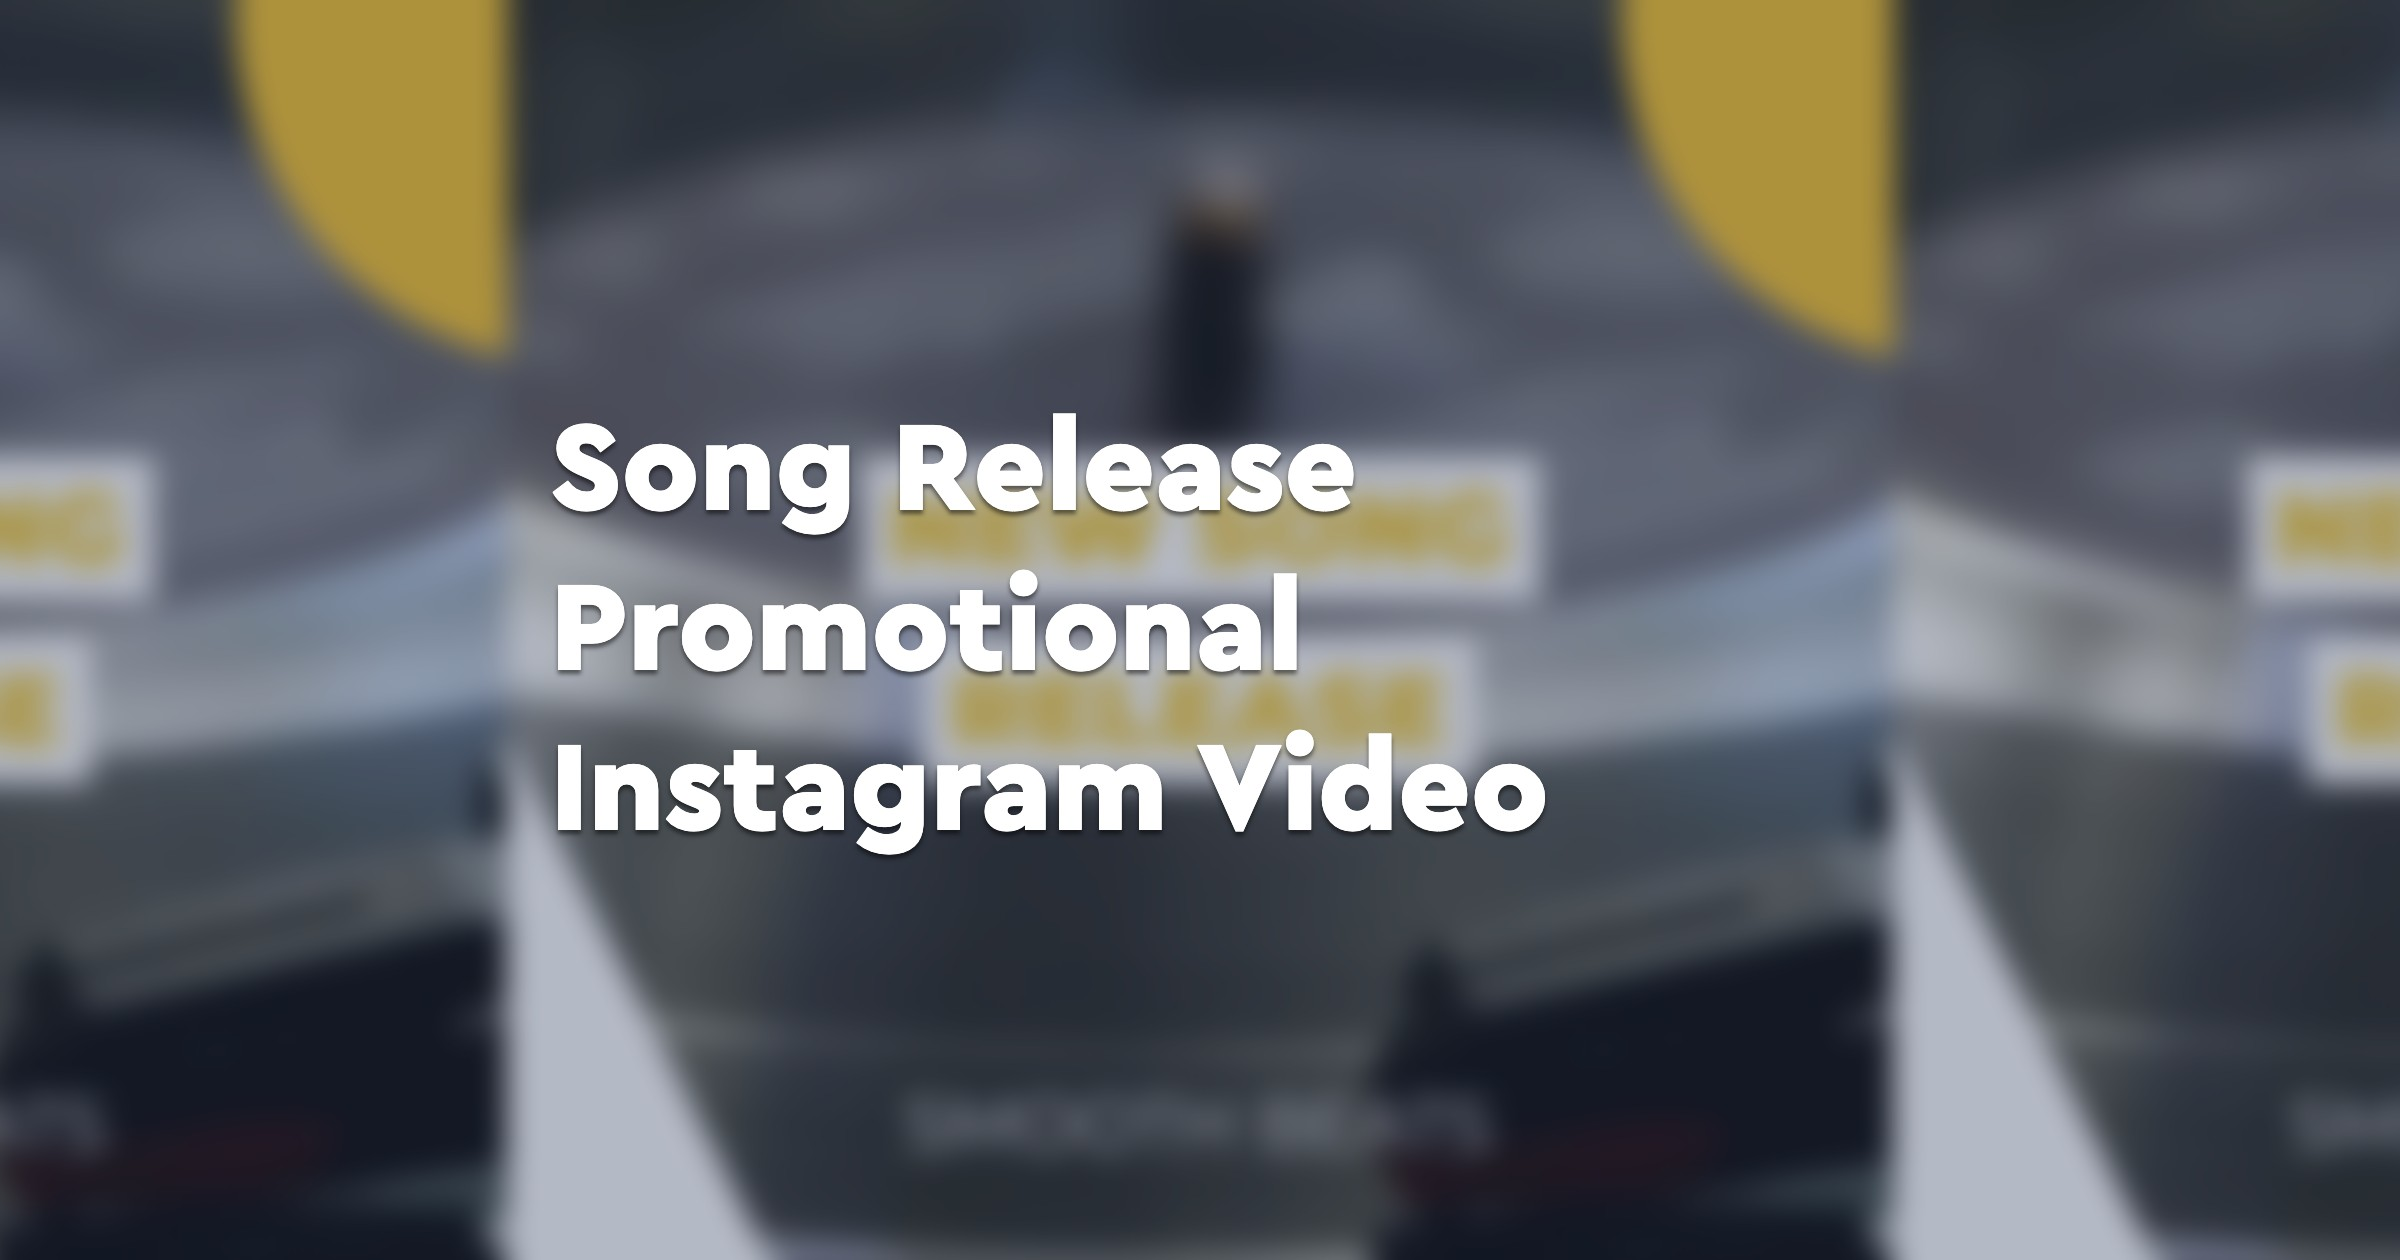 Song Release Promotional Instagram Video